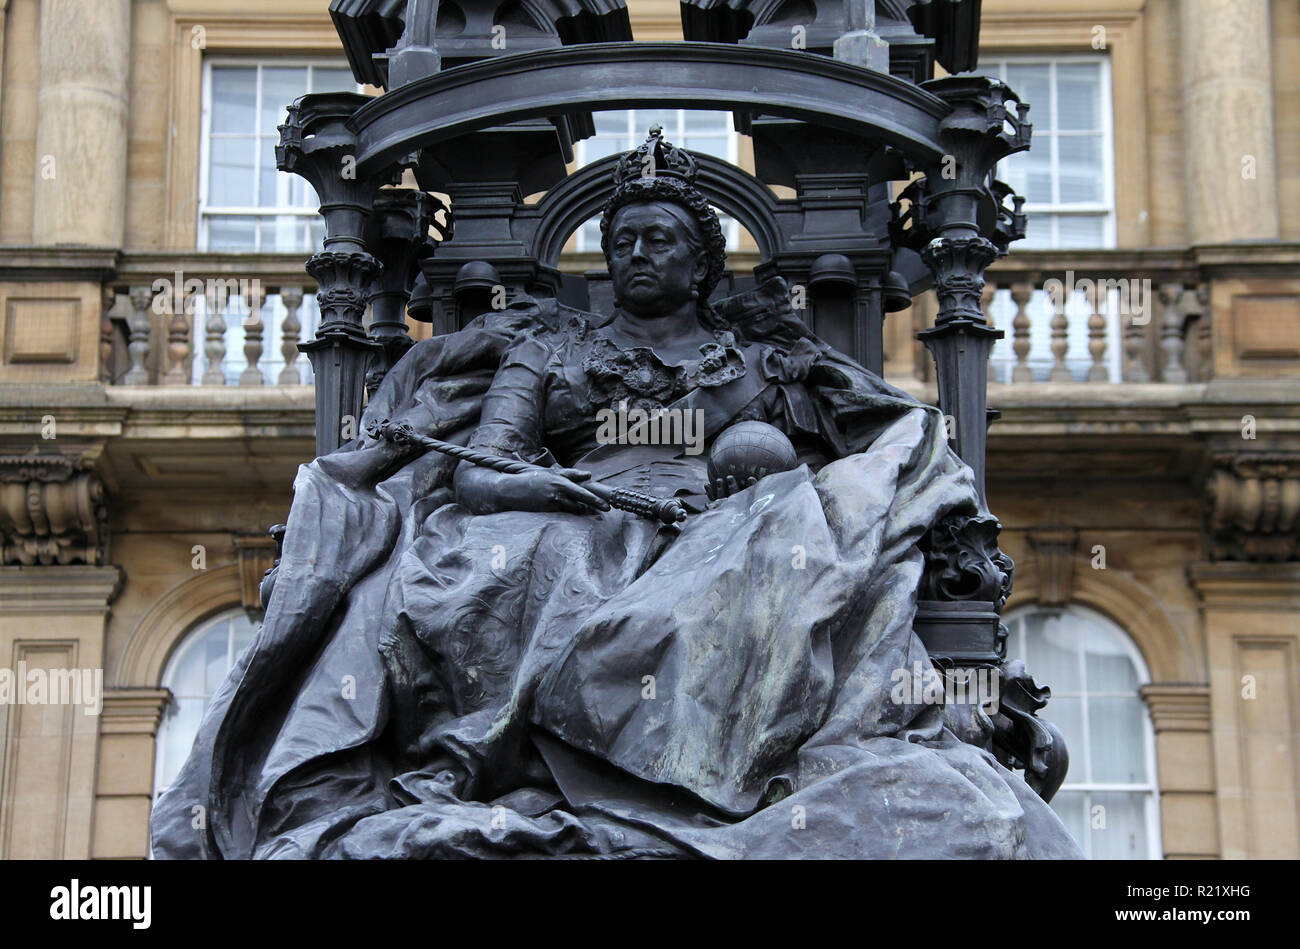 Queen Victoria by Alfred Gilbert in the city centre of Newcastle upon Tyne - Stock Image